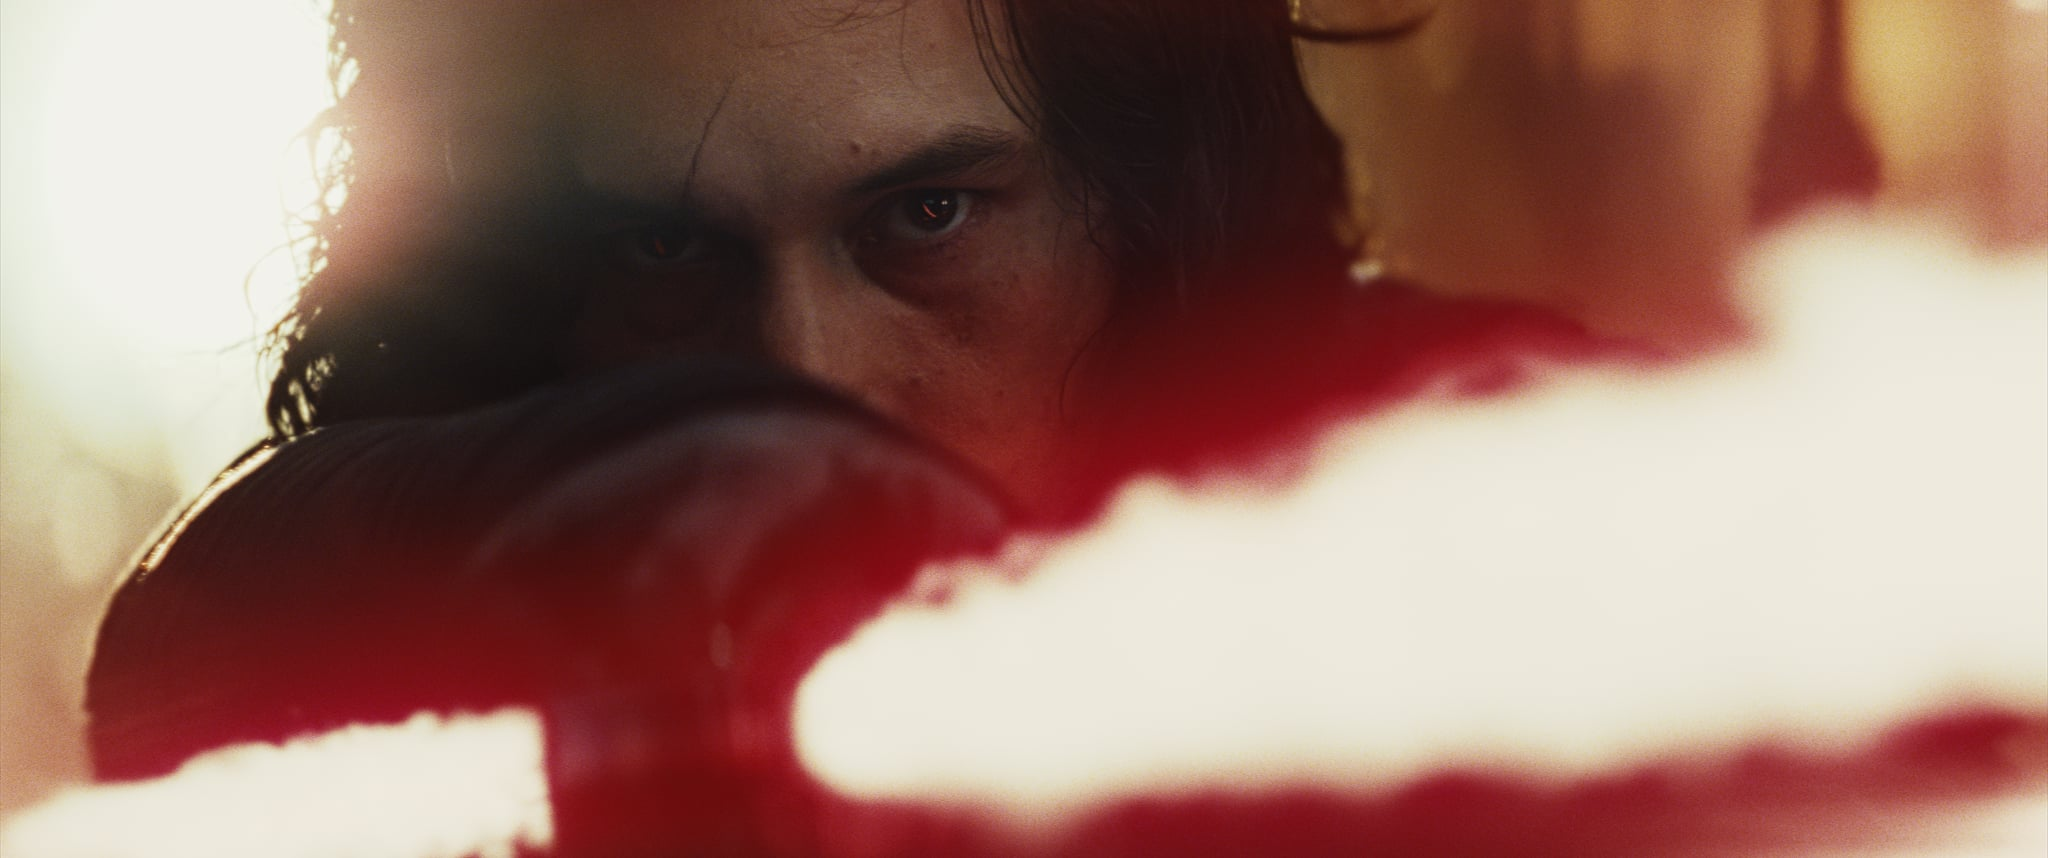 Star Wars: The Last JediKylo Ren (Adam Driver)Photo: Film Frames Industrial Light & Magic/Lucasfilm©2017 Lucasfilm Ltd. All Rights Reserved.